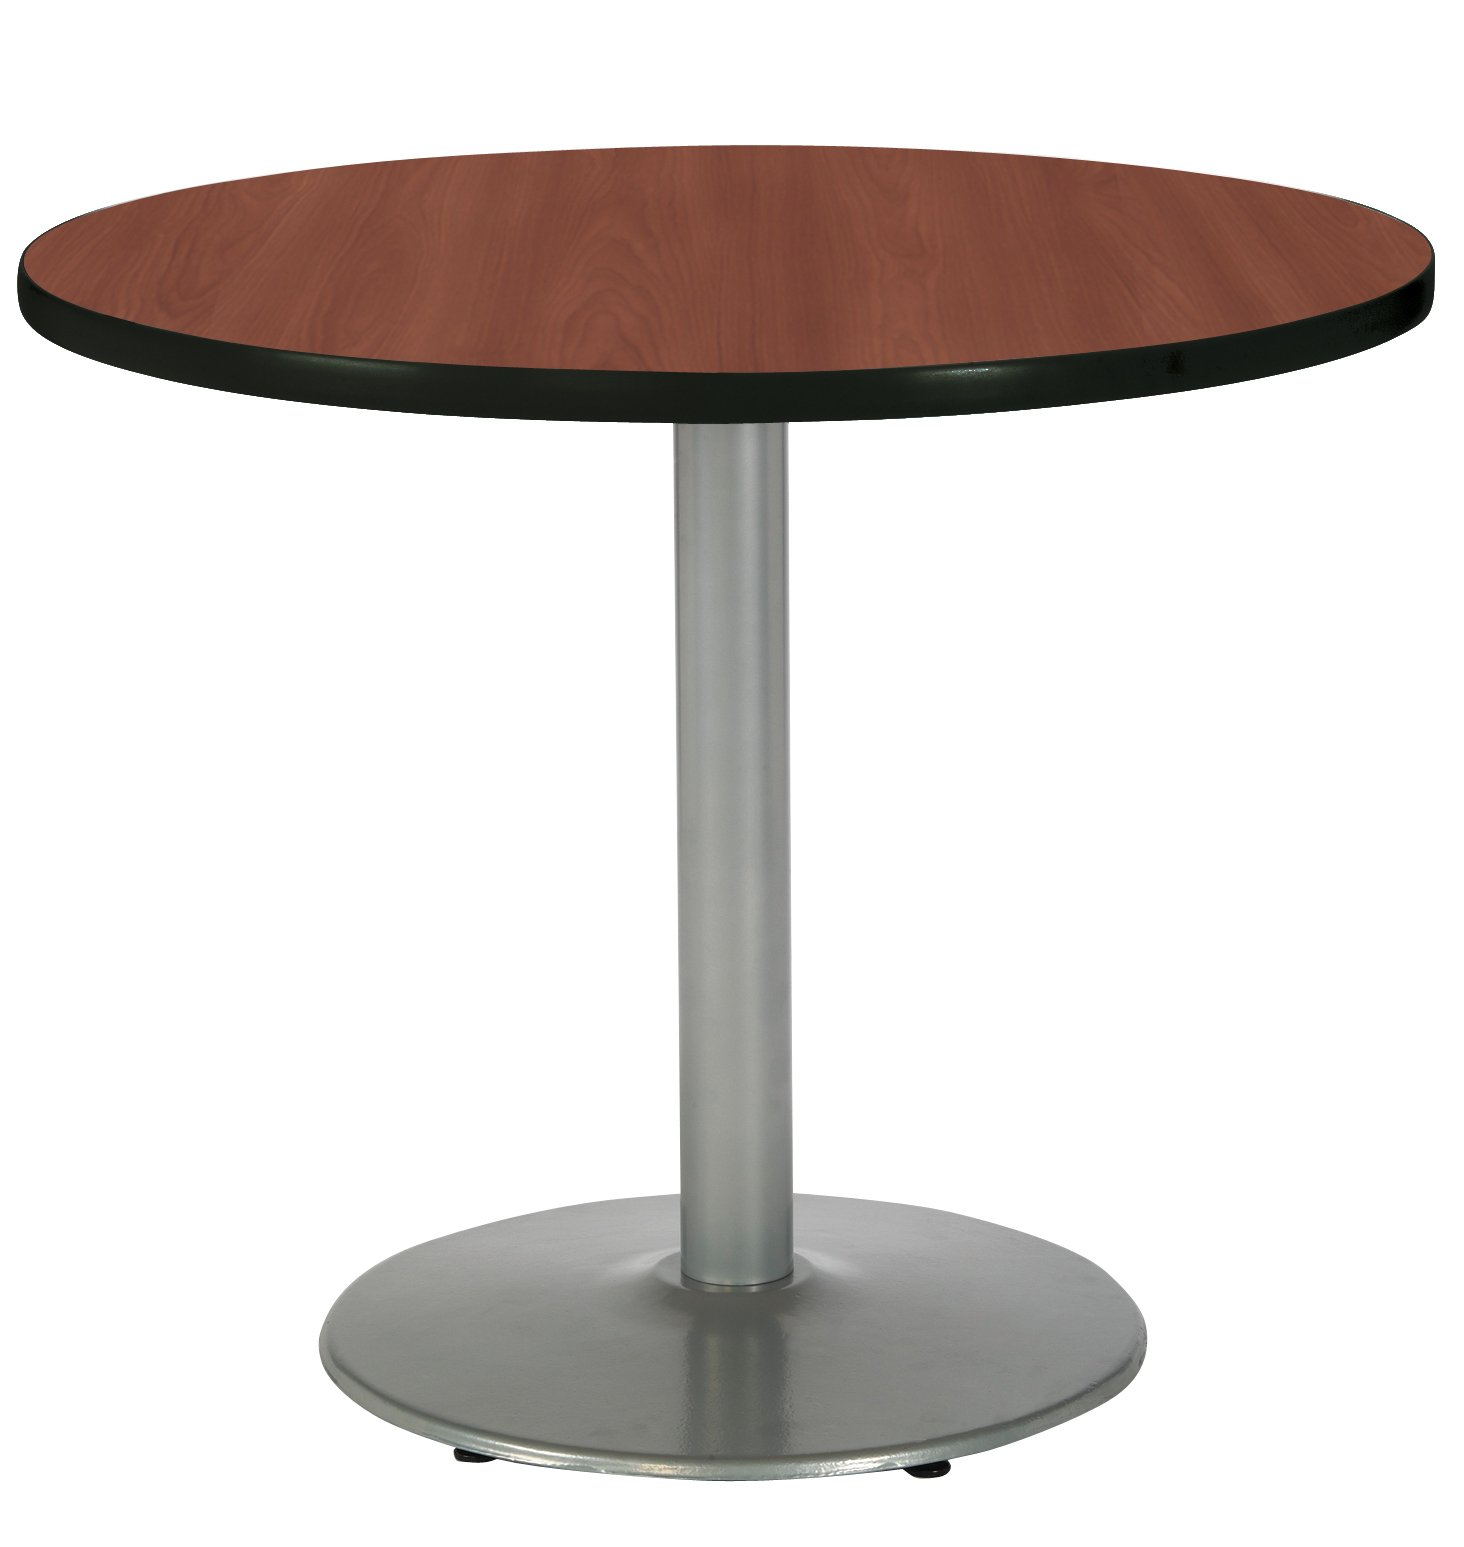 KFI Seating Round Pedestal Table with Round Silver Base, Commercial Grade, 36-Inch, Dark Mahogany Laminate, Made in the USA